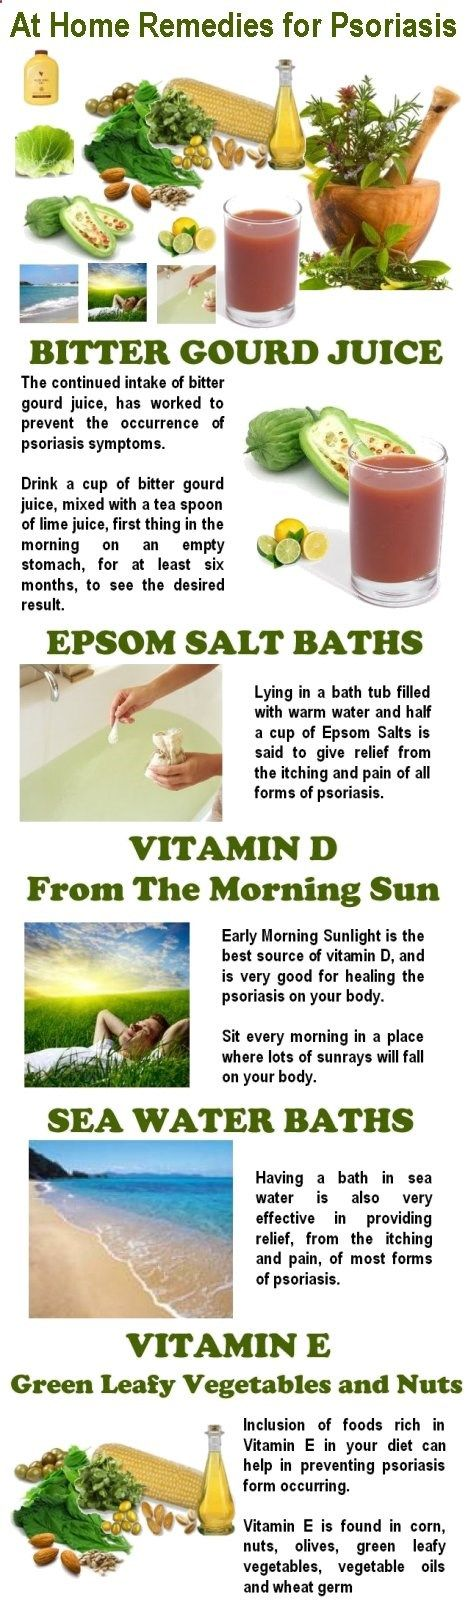 There may be no cure for Psoriasis, but that doesnt mean we cant prevent it from spreading and effecting our lives. At Home Remedies for Psoriasis - Recognized at home remedies for psoriasis can be said to be the only true natural treatment for psoriasis not all natural and medical remedies work for everyone so try what works best for you ^_^